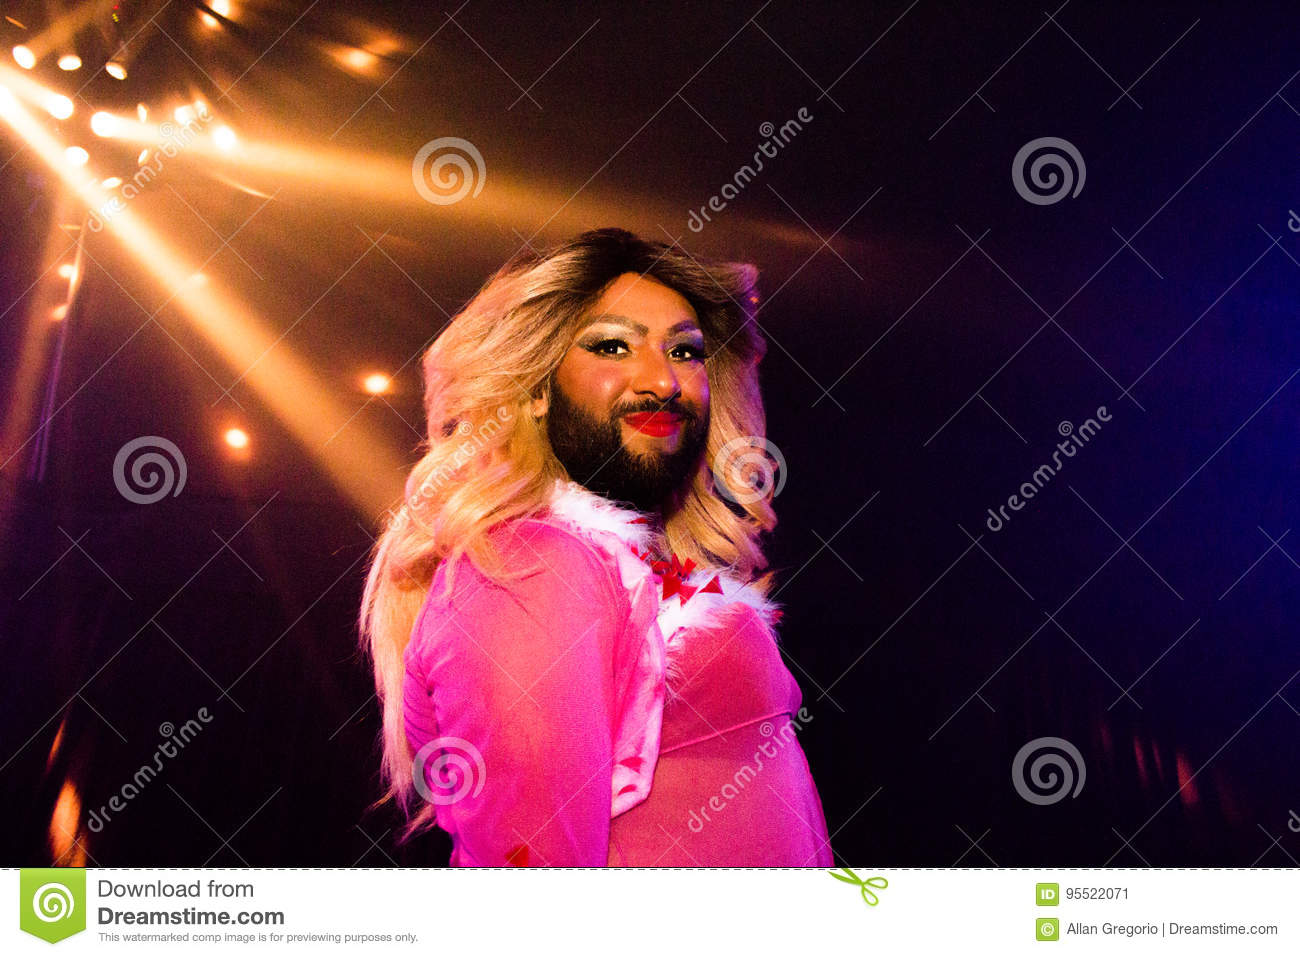 Drag queen on stage at glastonbury festival 2017 editorial.